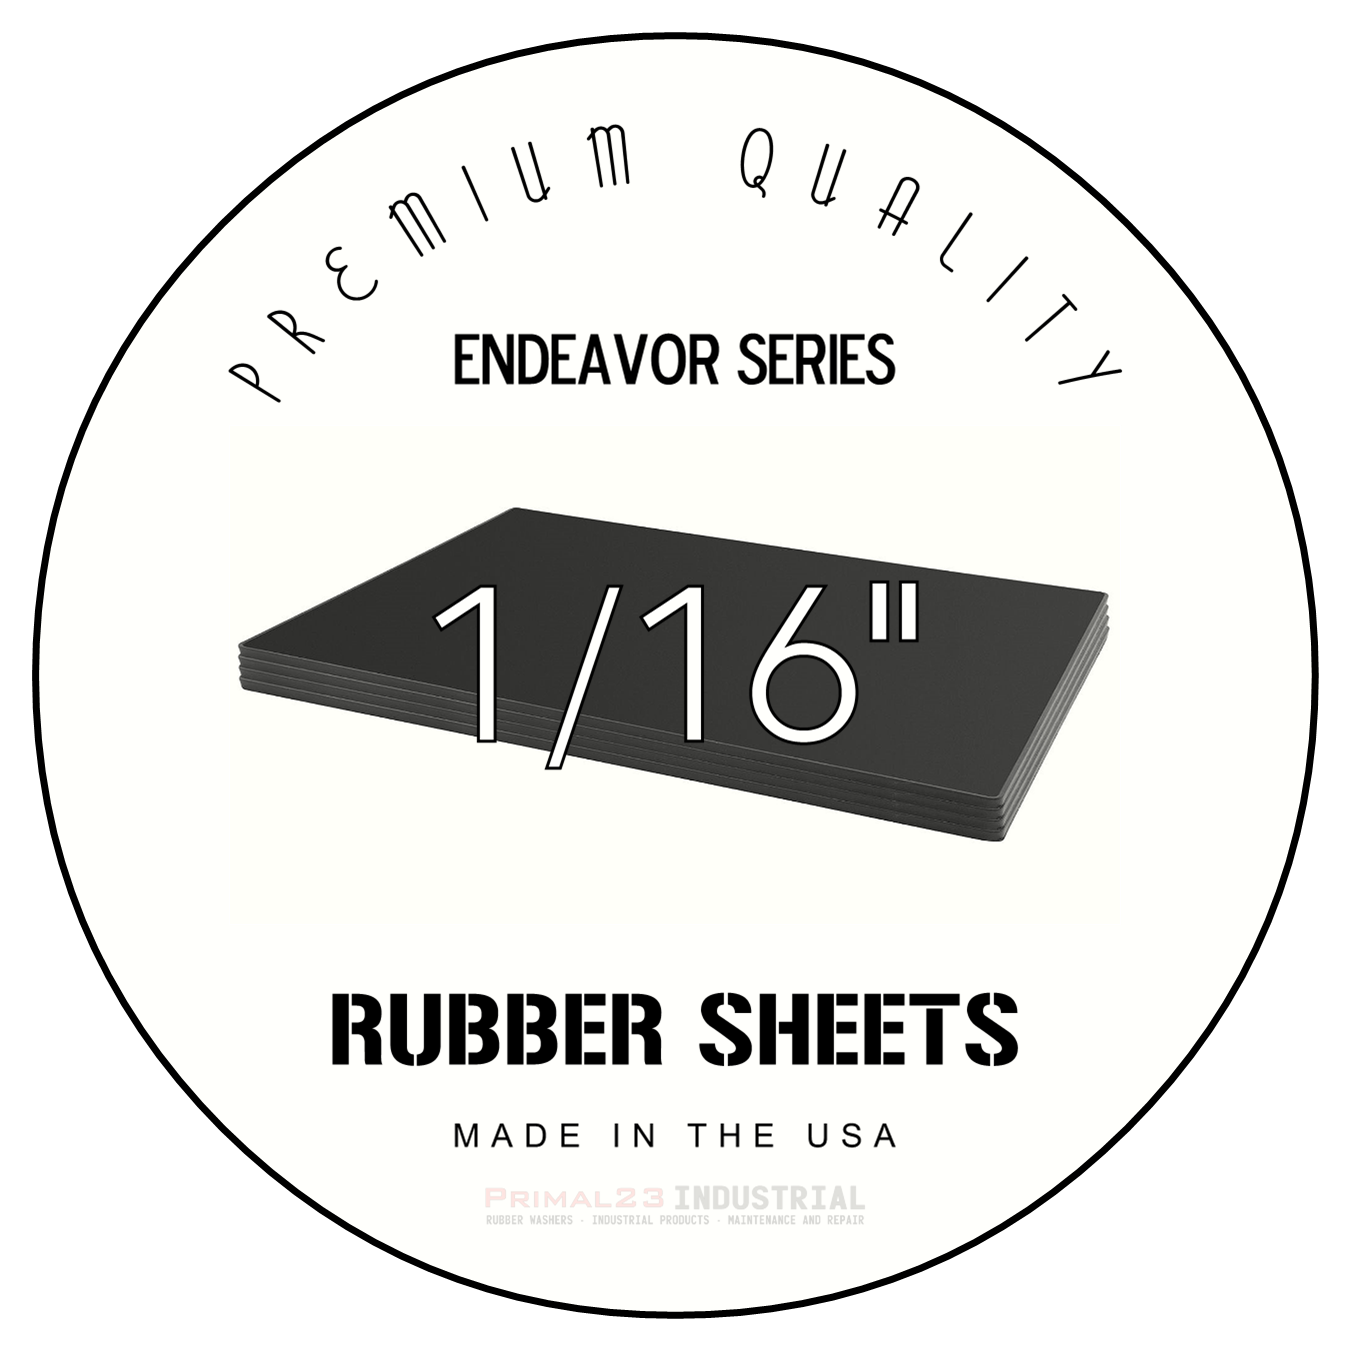 Endeavor Series Rubber Sheets